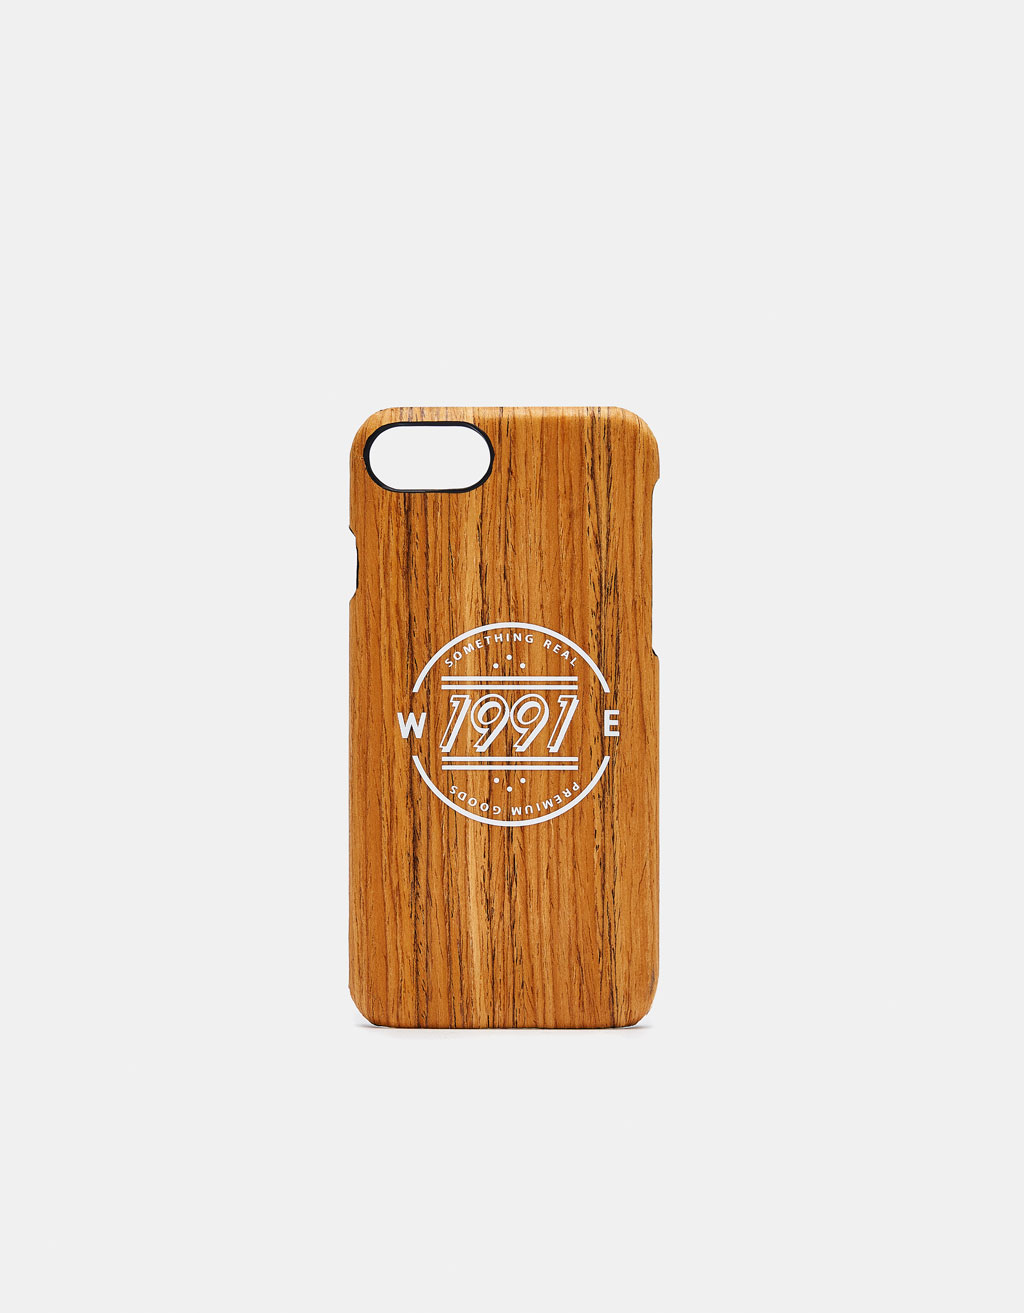 Wood-effect iPhone 6/7/8 case